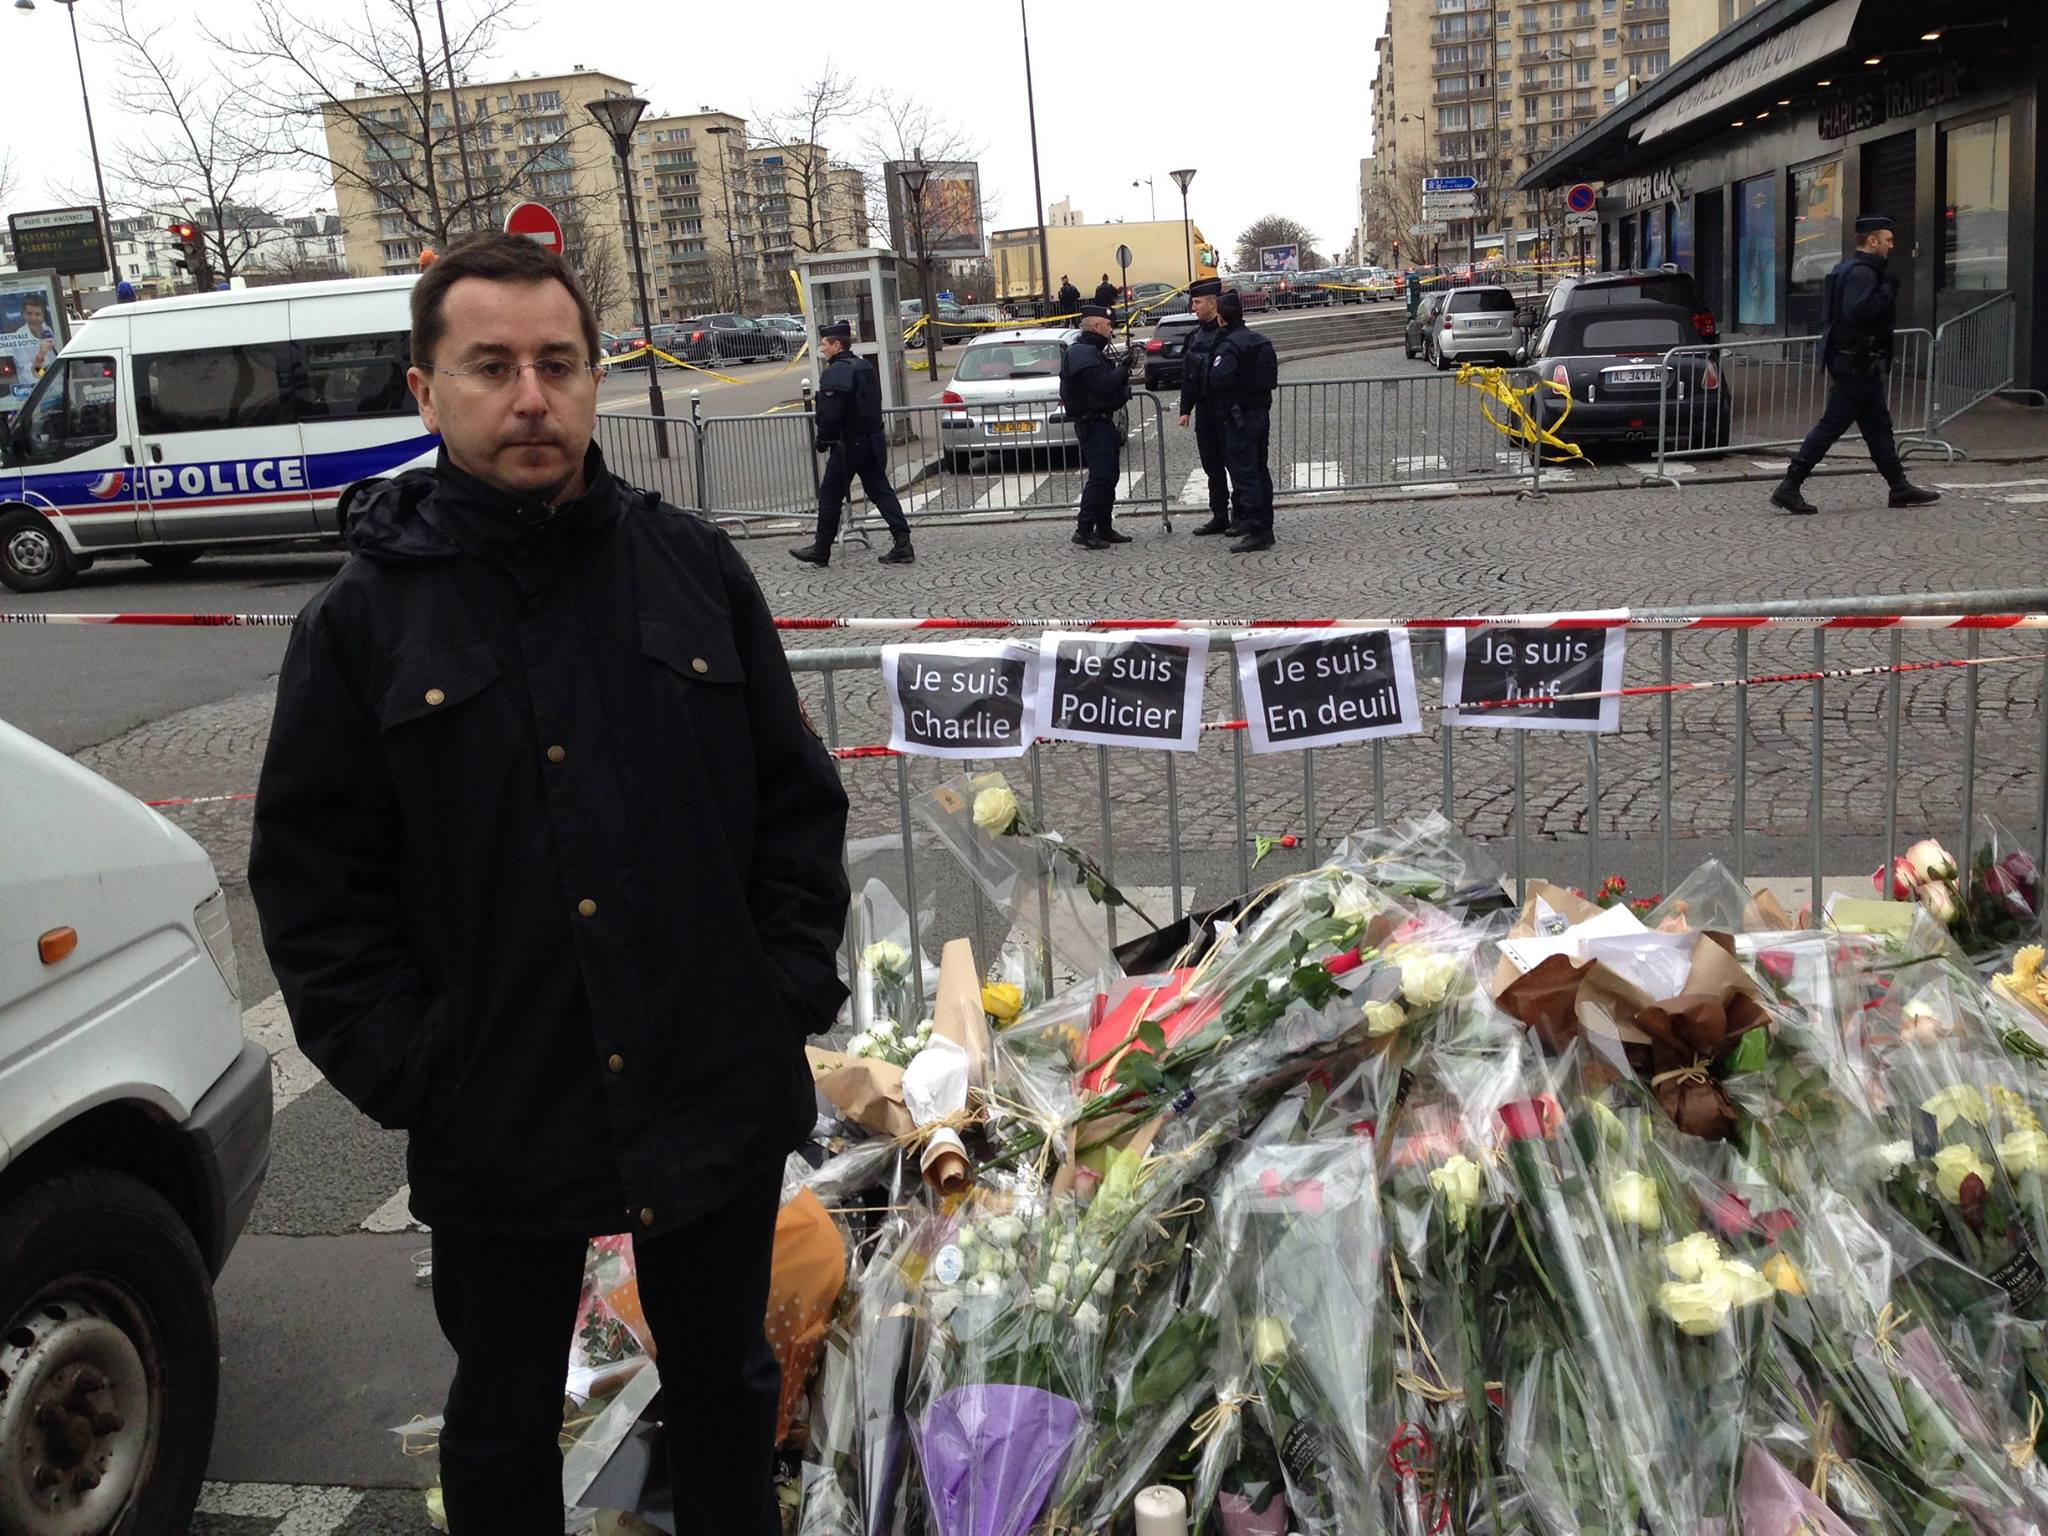 john search results page  eric ellena at the site of the kosher supermarket siege pays his respect to